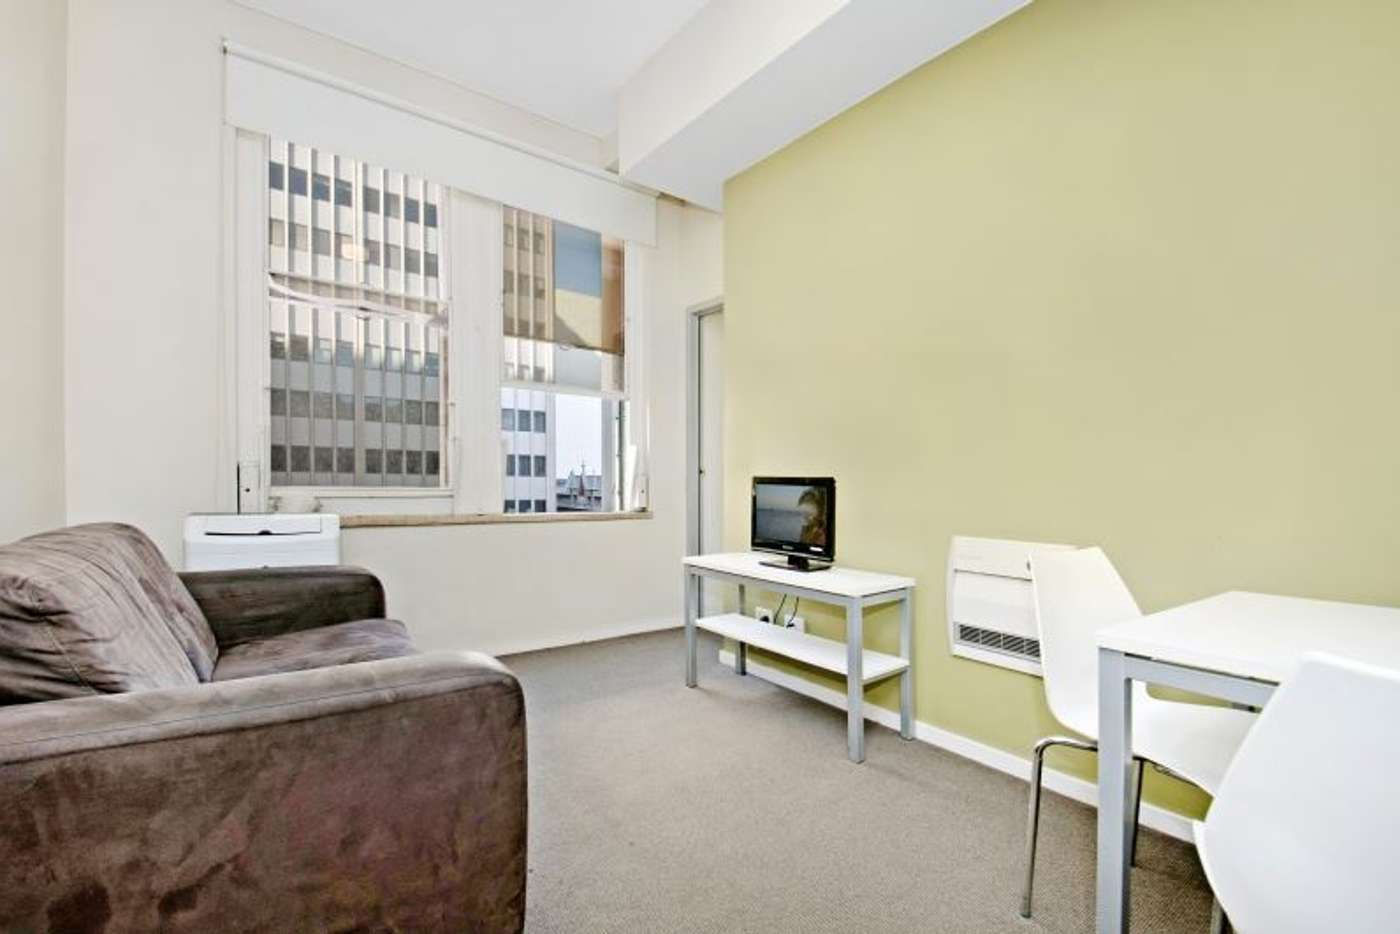 Fifth view of Homely apartment listing, 201/23 King William Street, Adelaide SA 5000